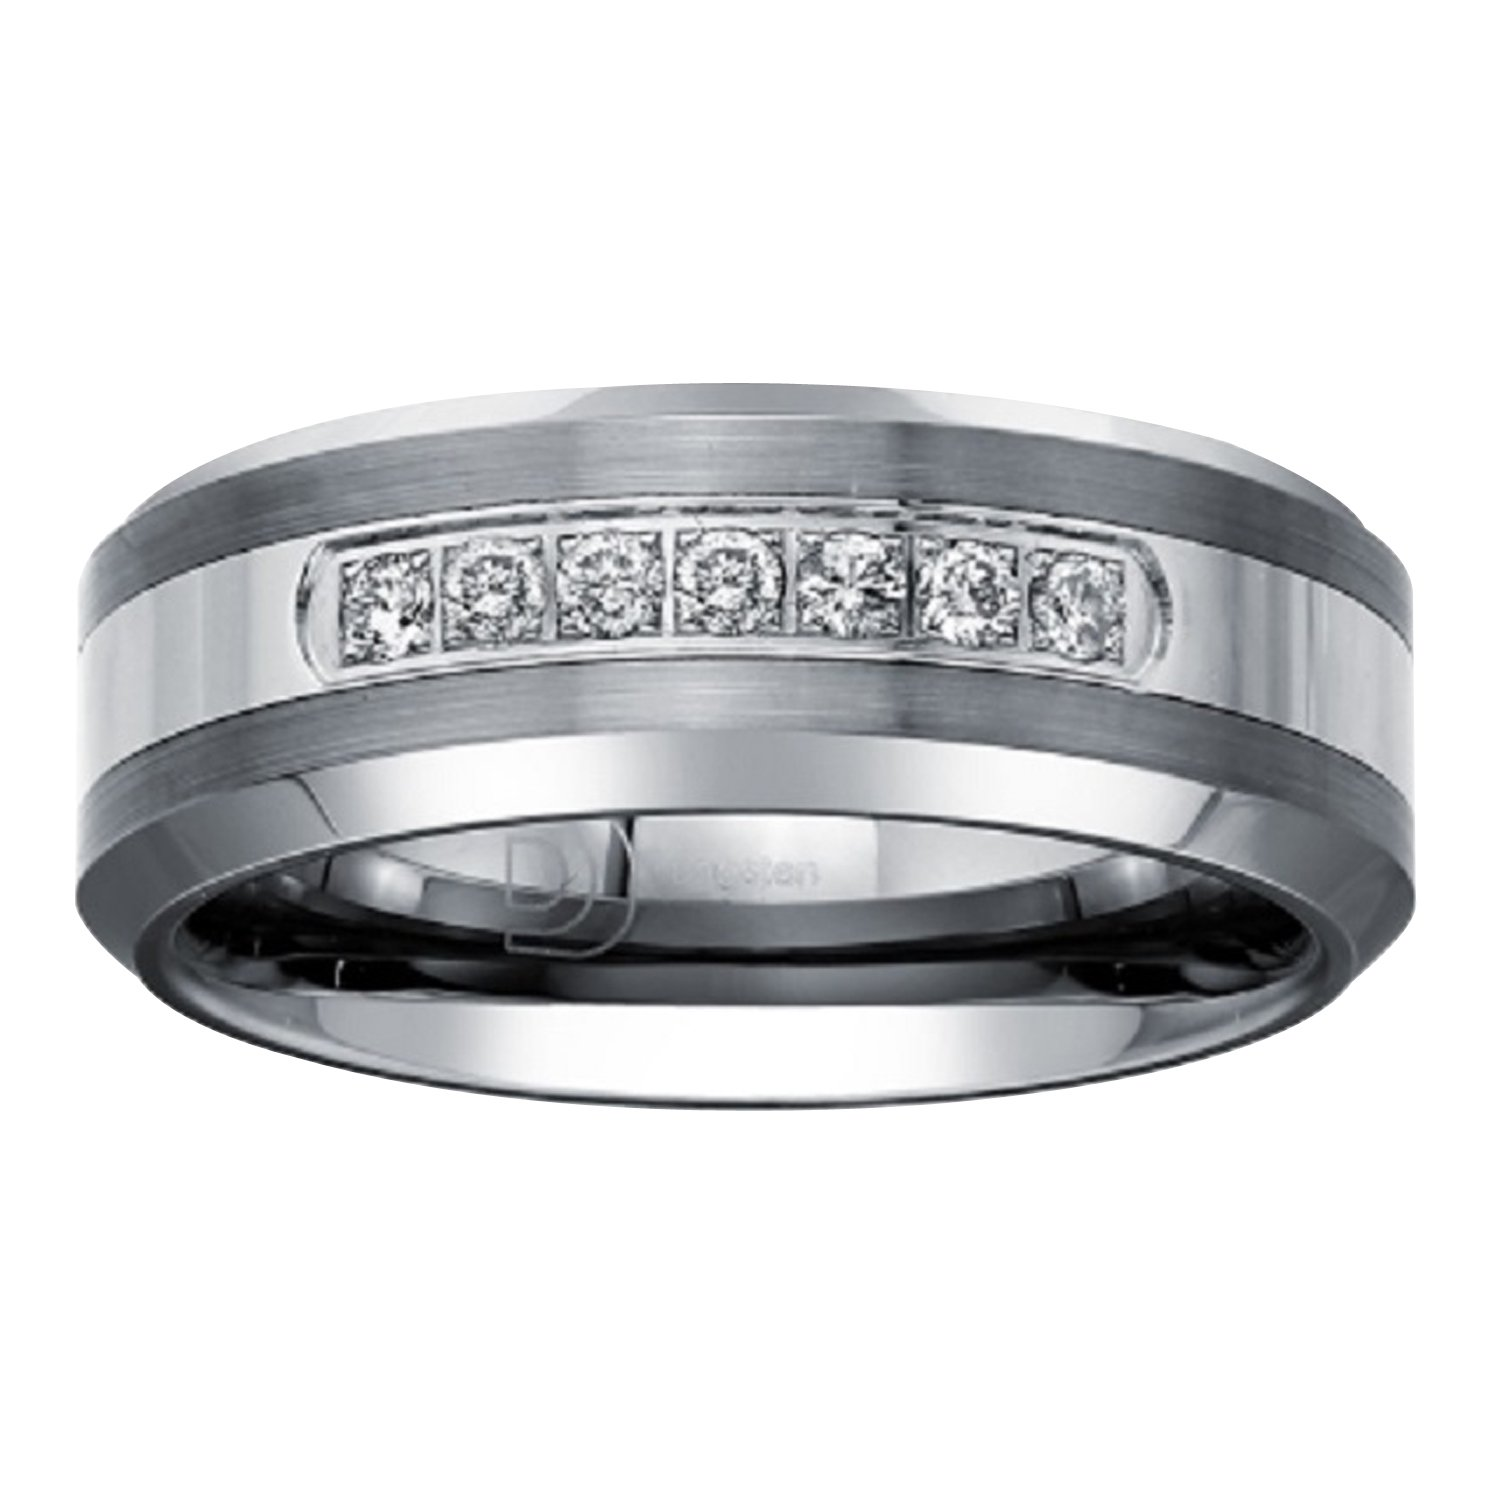 ring dpwt rounded carbide tungsten white product with wedding rings finish polished addington